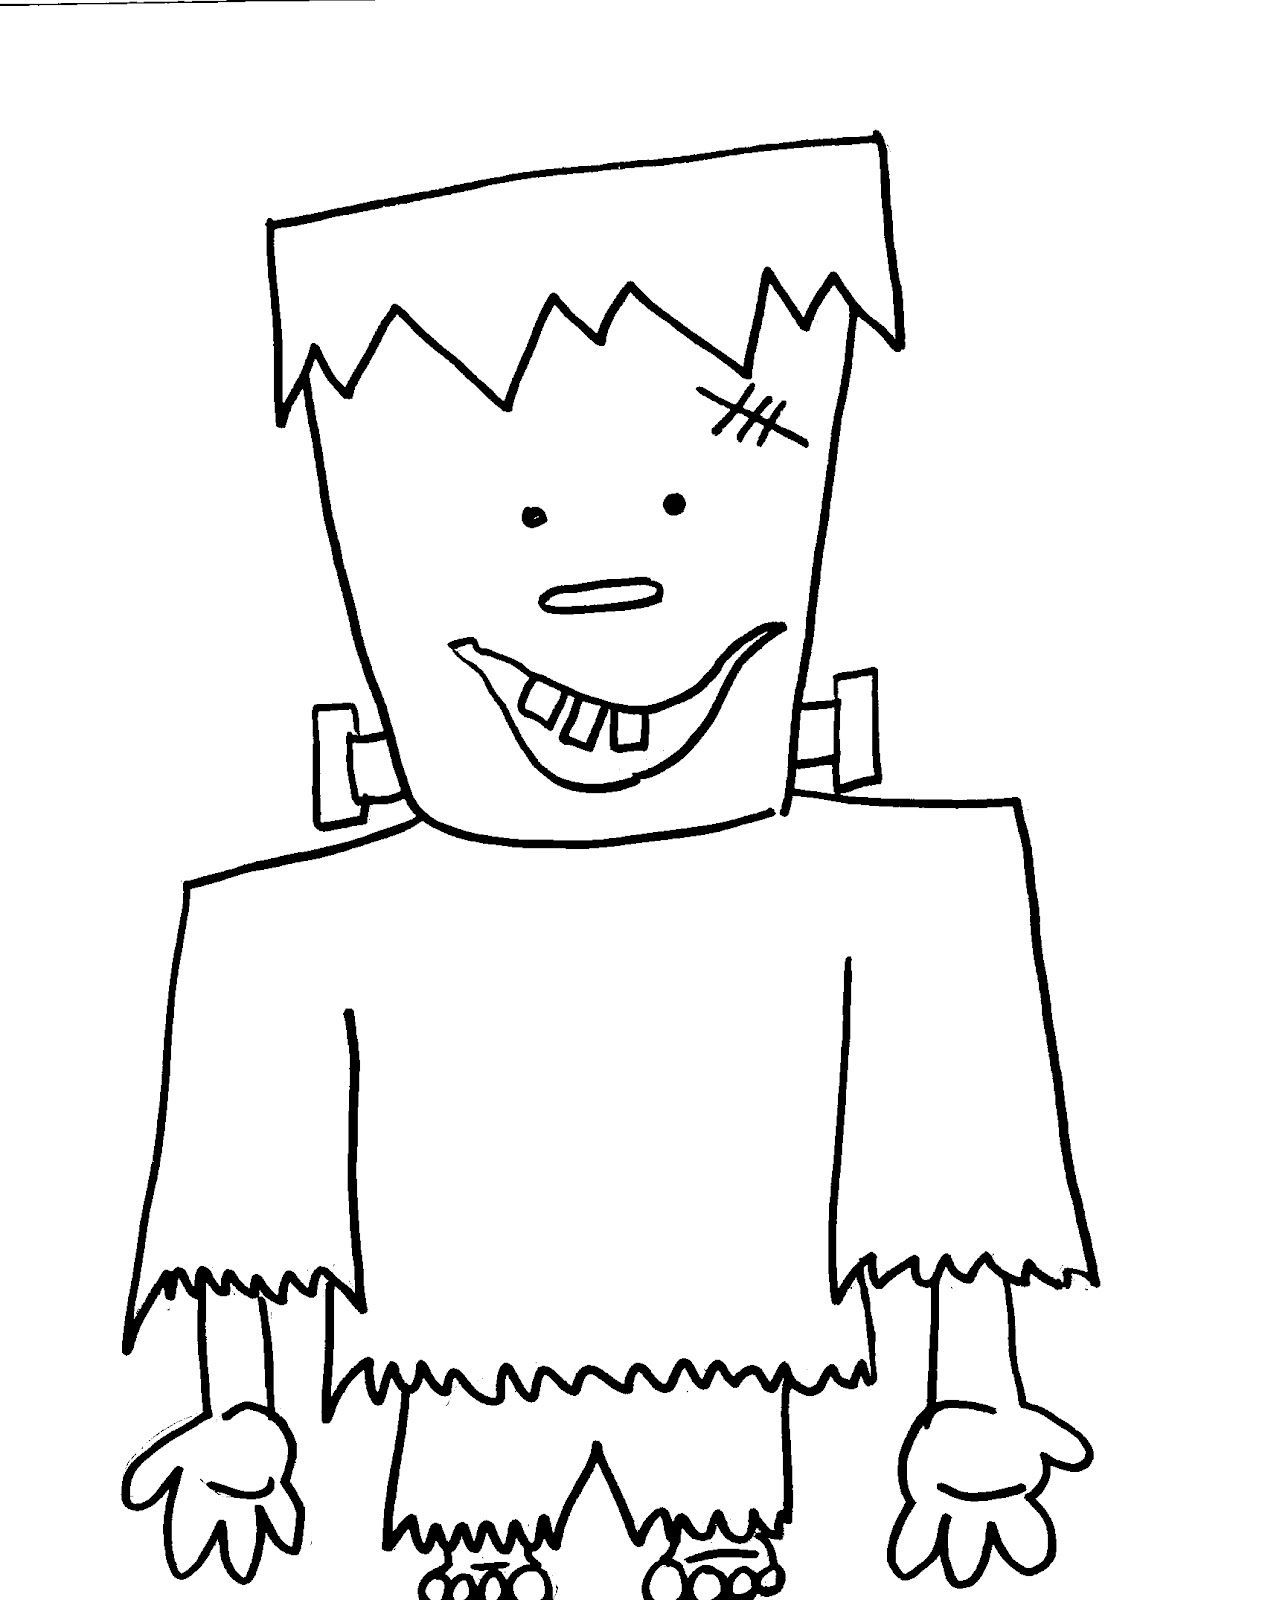 Frankenstein Coloring Pages Gorgeous Frankenstein Coloring Page For Halloween  Halloween Fun Inspiration